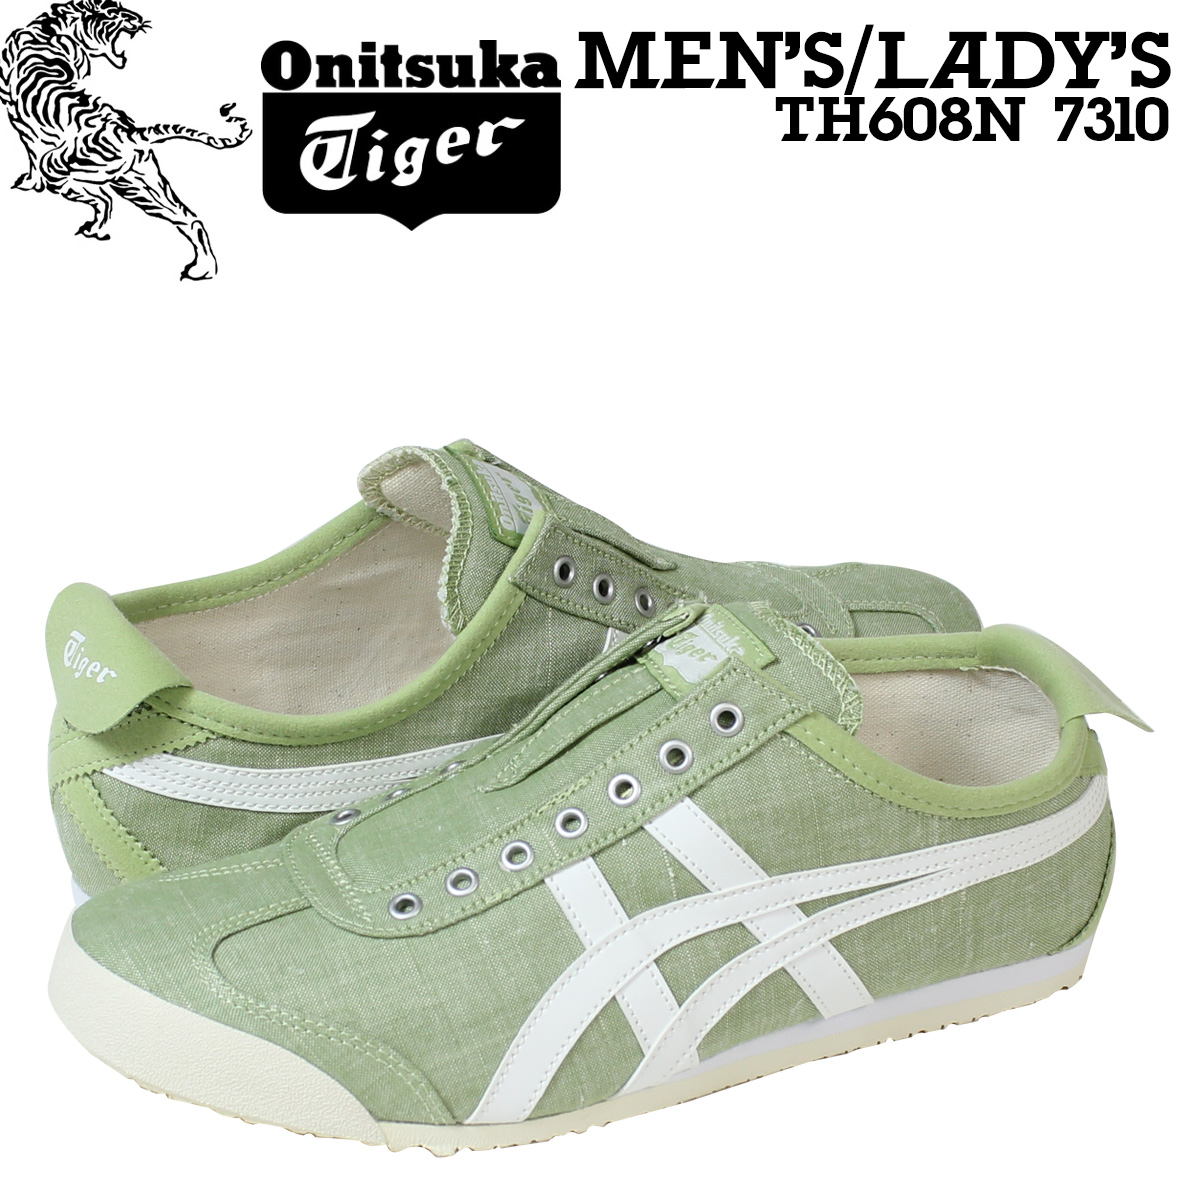 low priced f376c 7ae80 onitsuka tiger online store europe